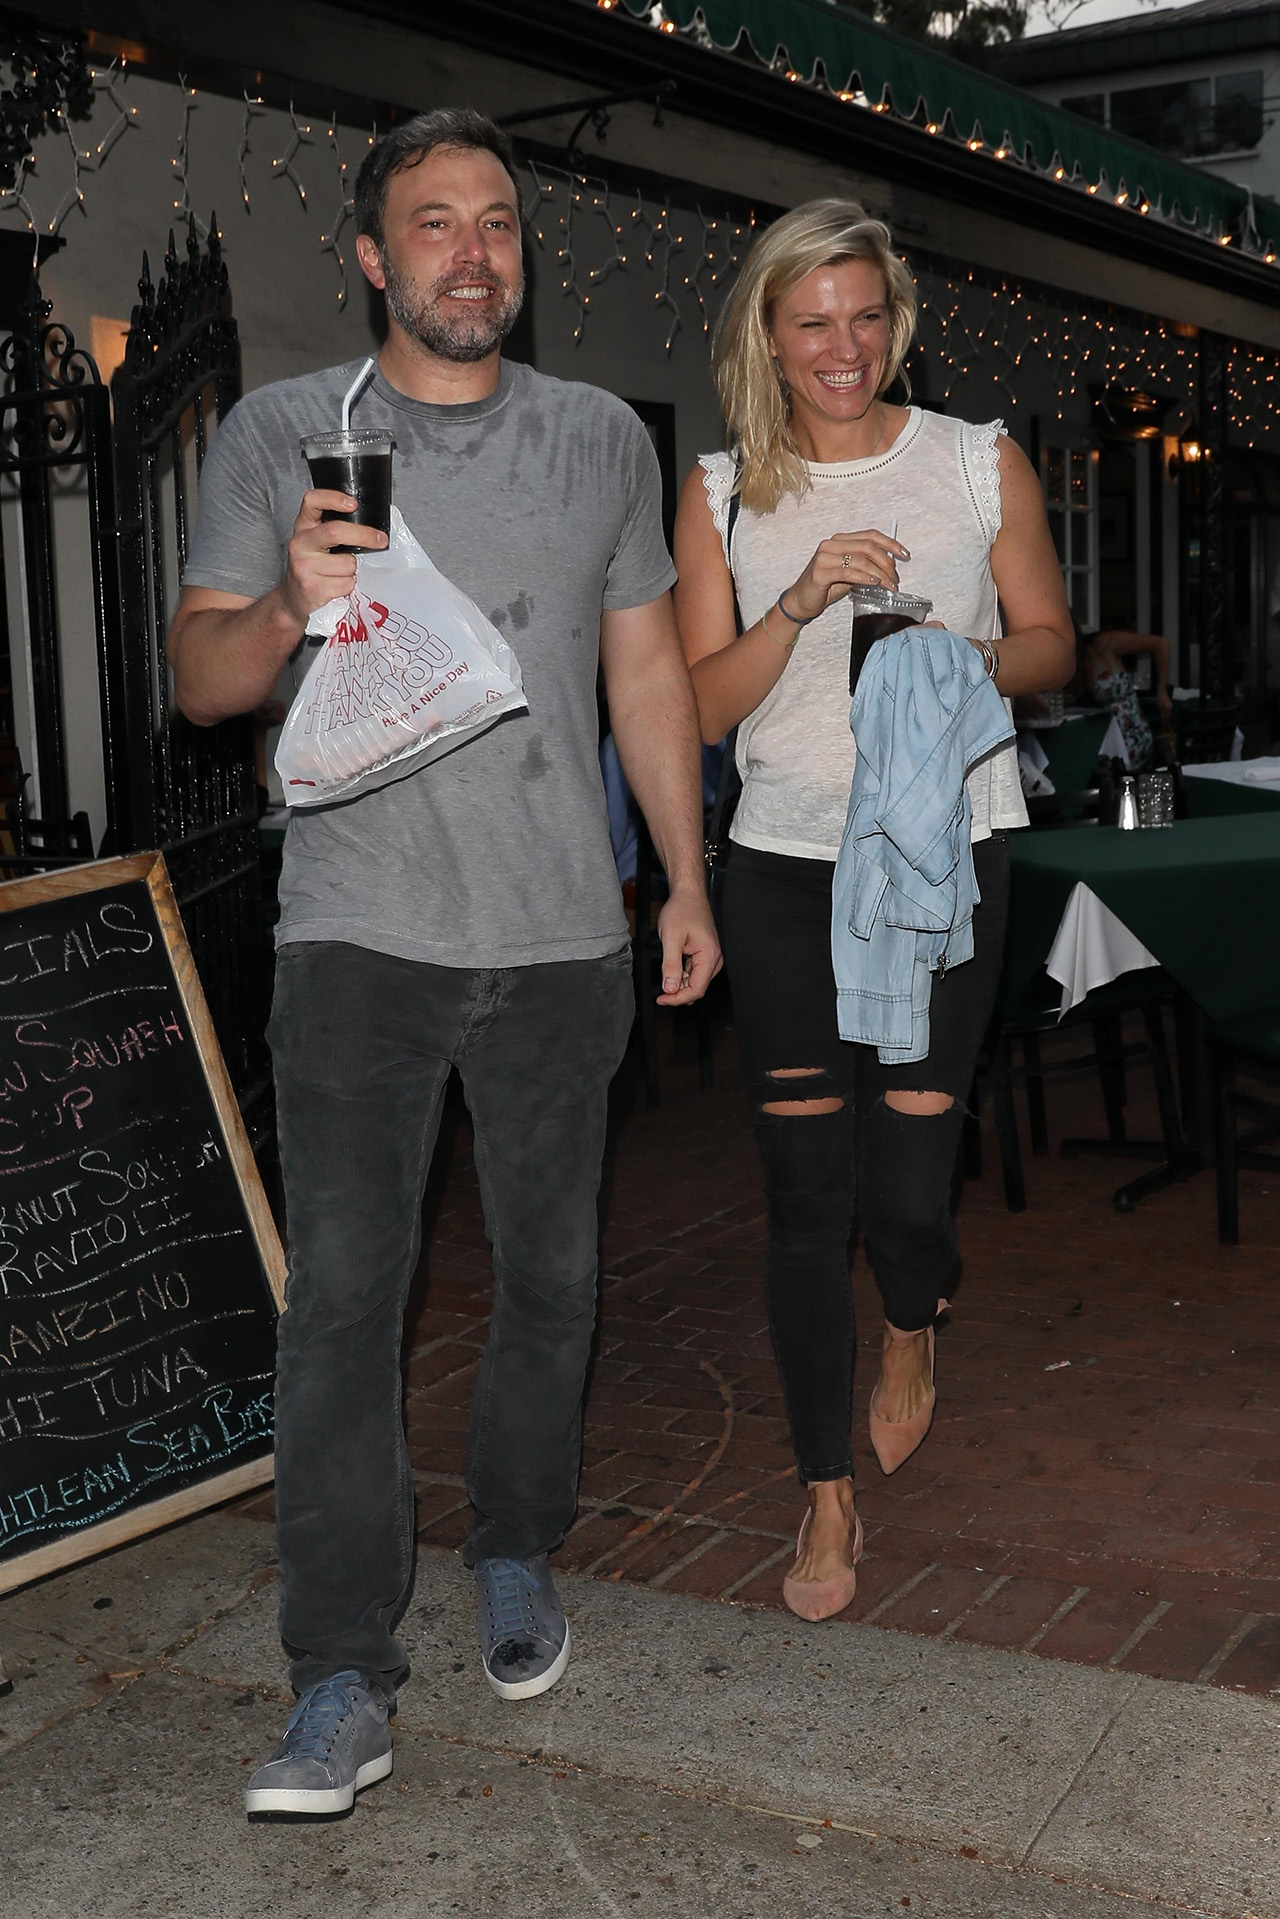 Pacific Palisades, CA  - Ben Affleck looks extremely happy exiting Beech Street Cafe restaurant after having some pizza with new girlfriend Lindsay Shookus.  Pictured: Ben Affleck and Lindsay Shookus  BACKGRID USA 10 JULY 2017   BYLINE MUST READ: NGRE / BACKGRID  USA: +1 310 798 9111 / usasales@backgrid.com  UK: +44 208 344 2007 / uksales@backgrid.com  *UK Clients - Pictures Containing Children Please Pixelate Face Prior To Publication*